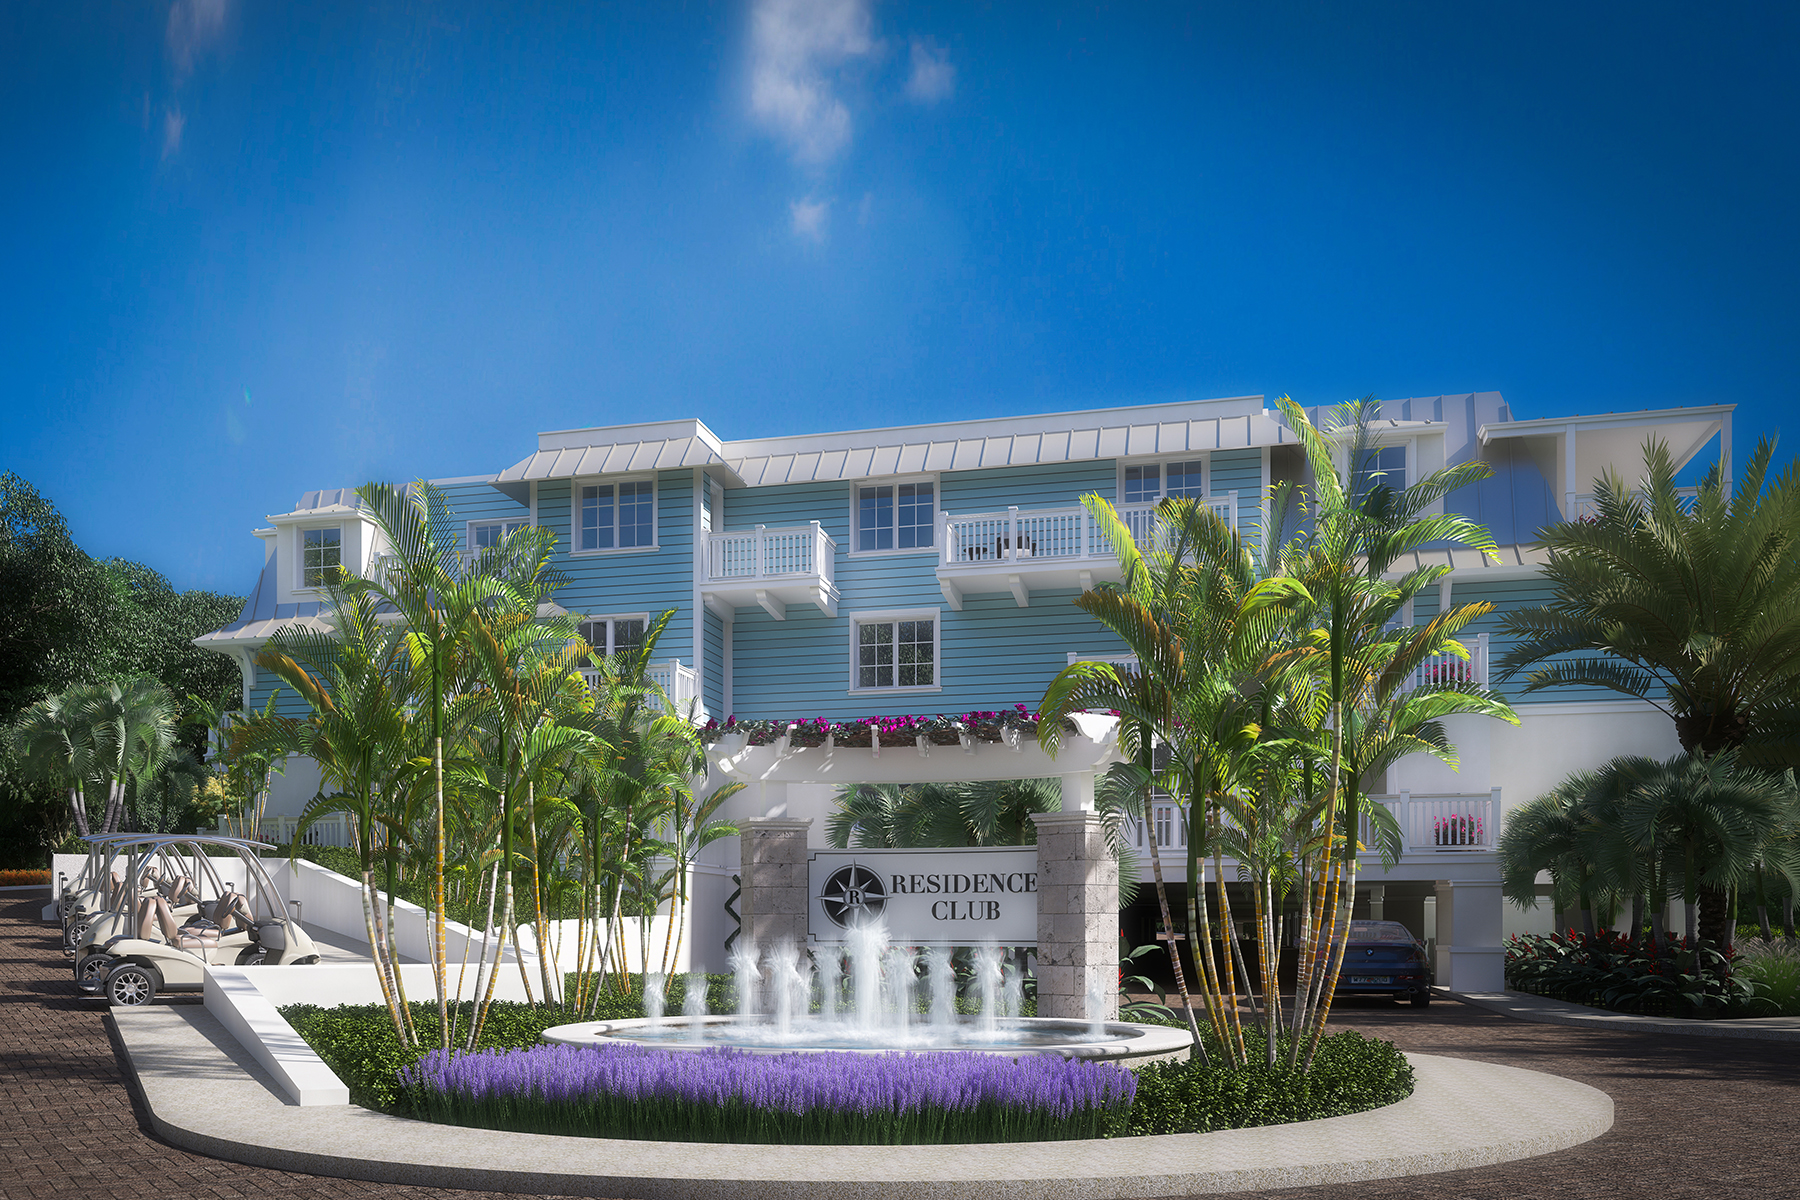 condominiums for Sale at 120 Residence Lane, #C, Key Largo, FL 120 Residence Lane C Key Largo, Florida 33037 United States